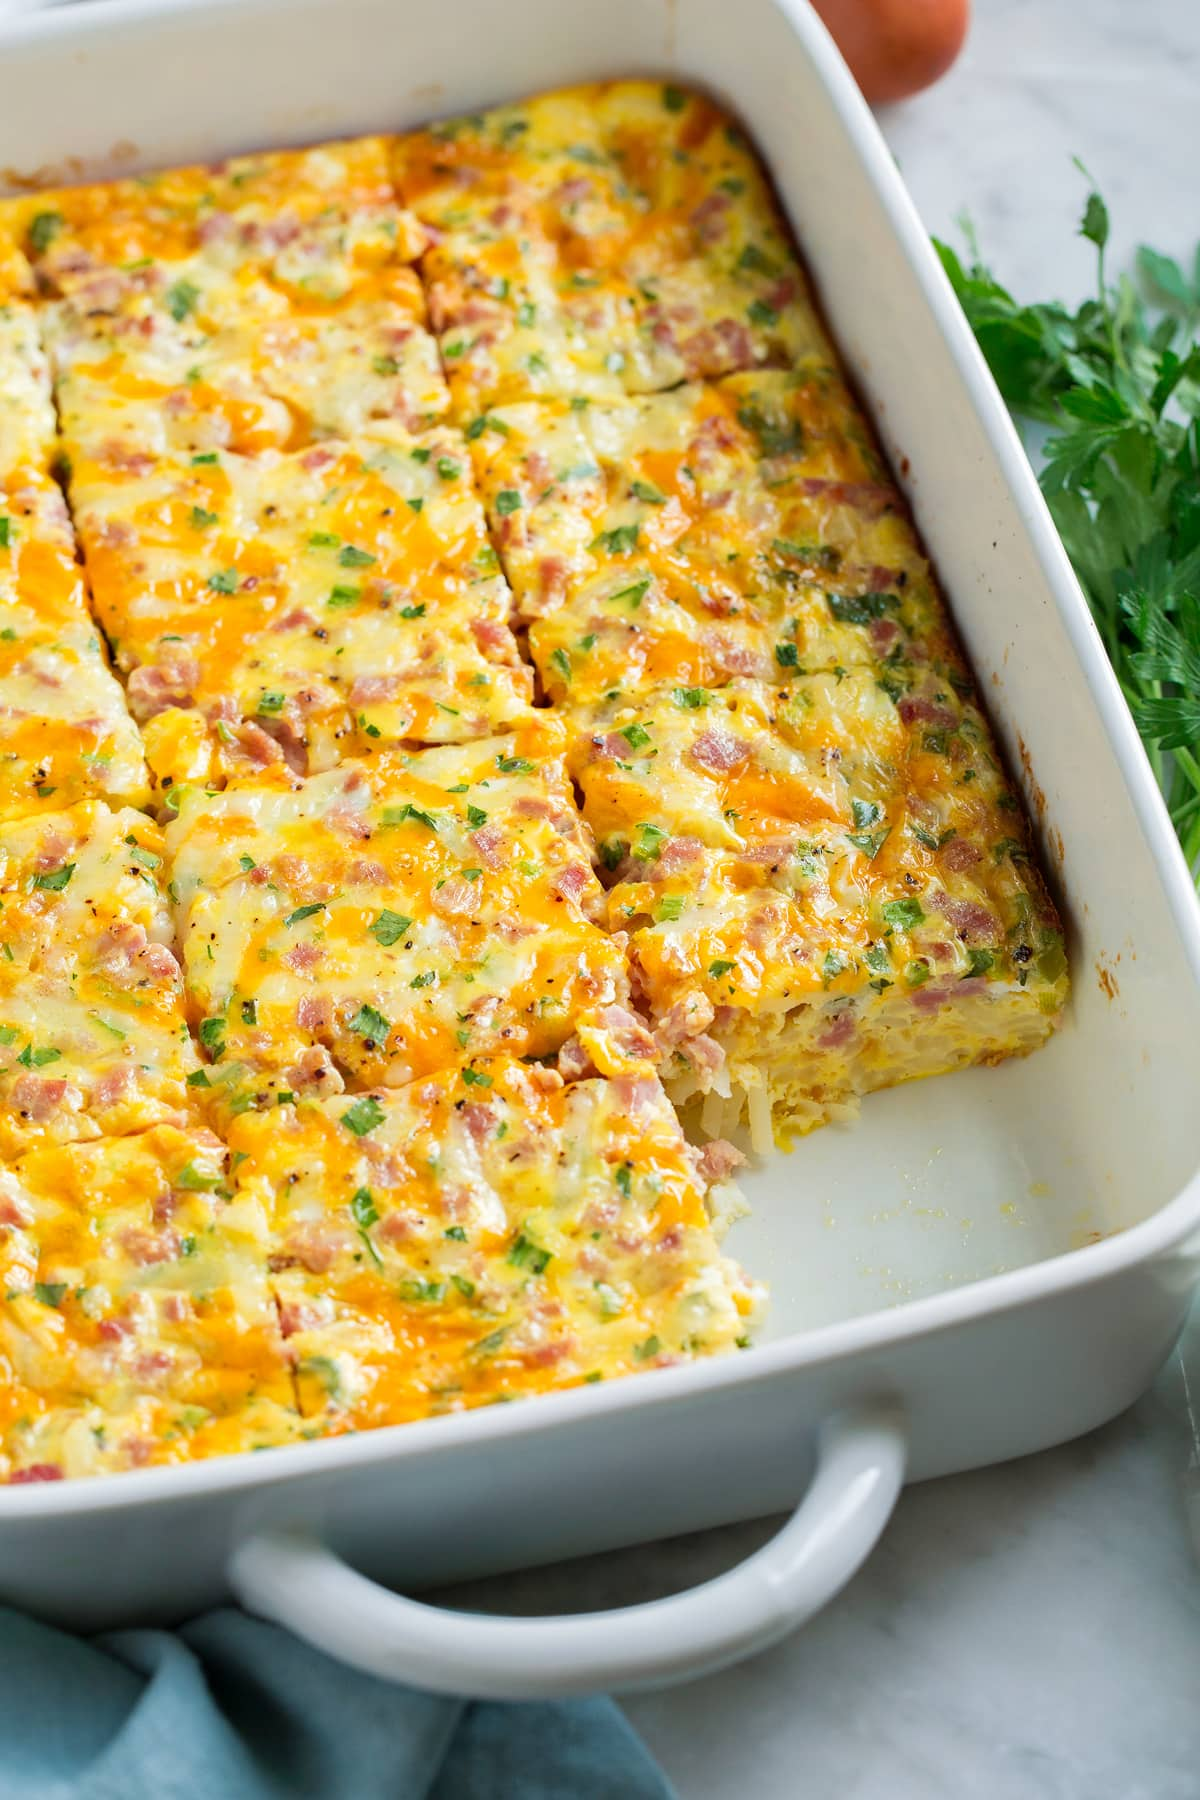 Image of make ahead breakfast casserole.